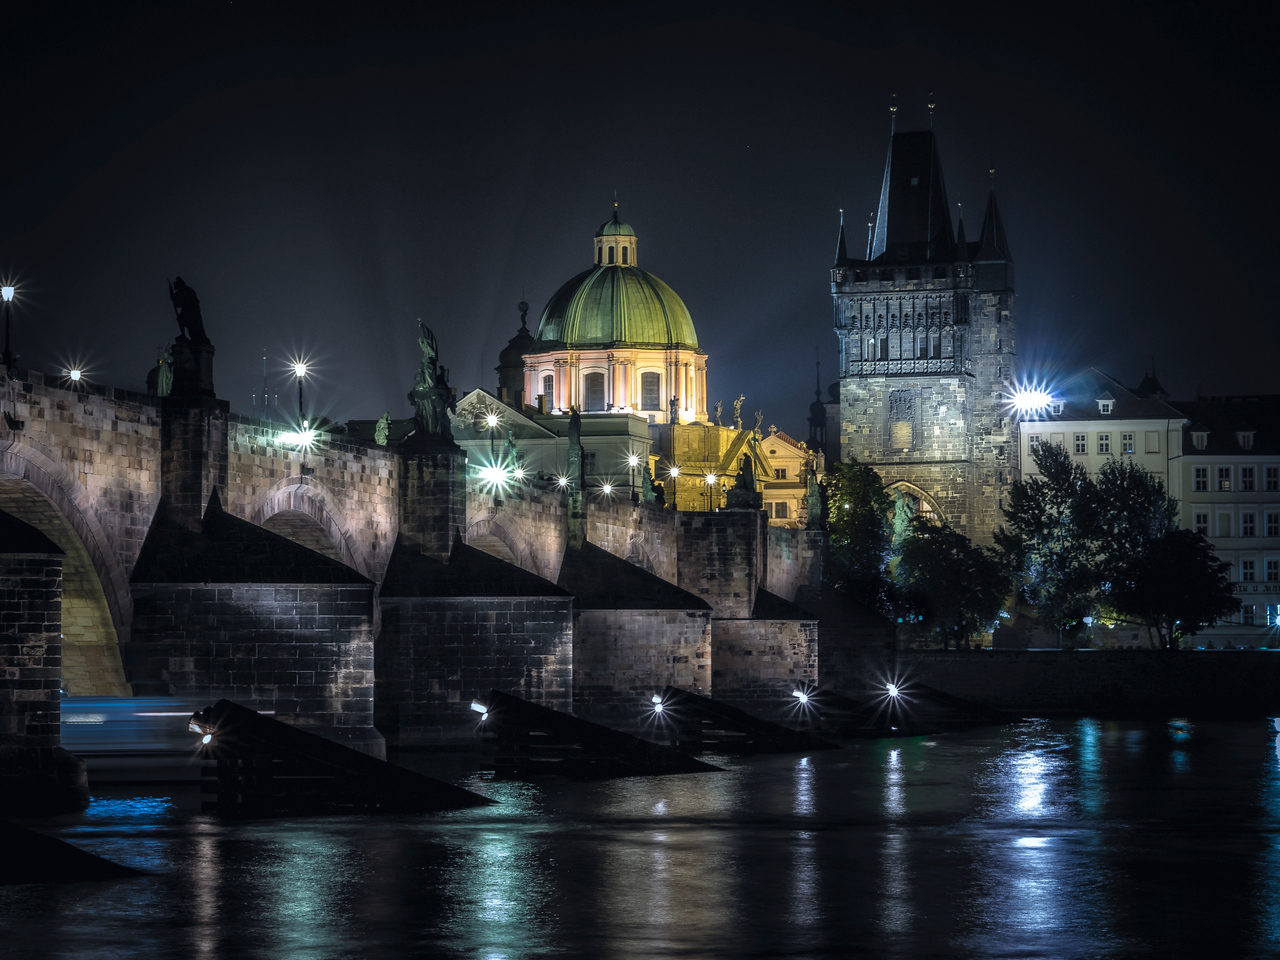 Charles Bridge at night, Prague (Praha), Czech Republic